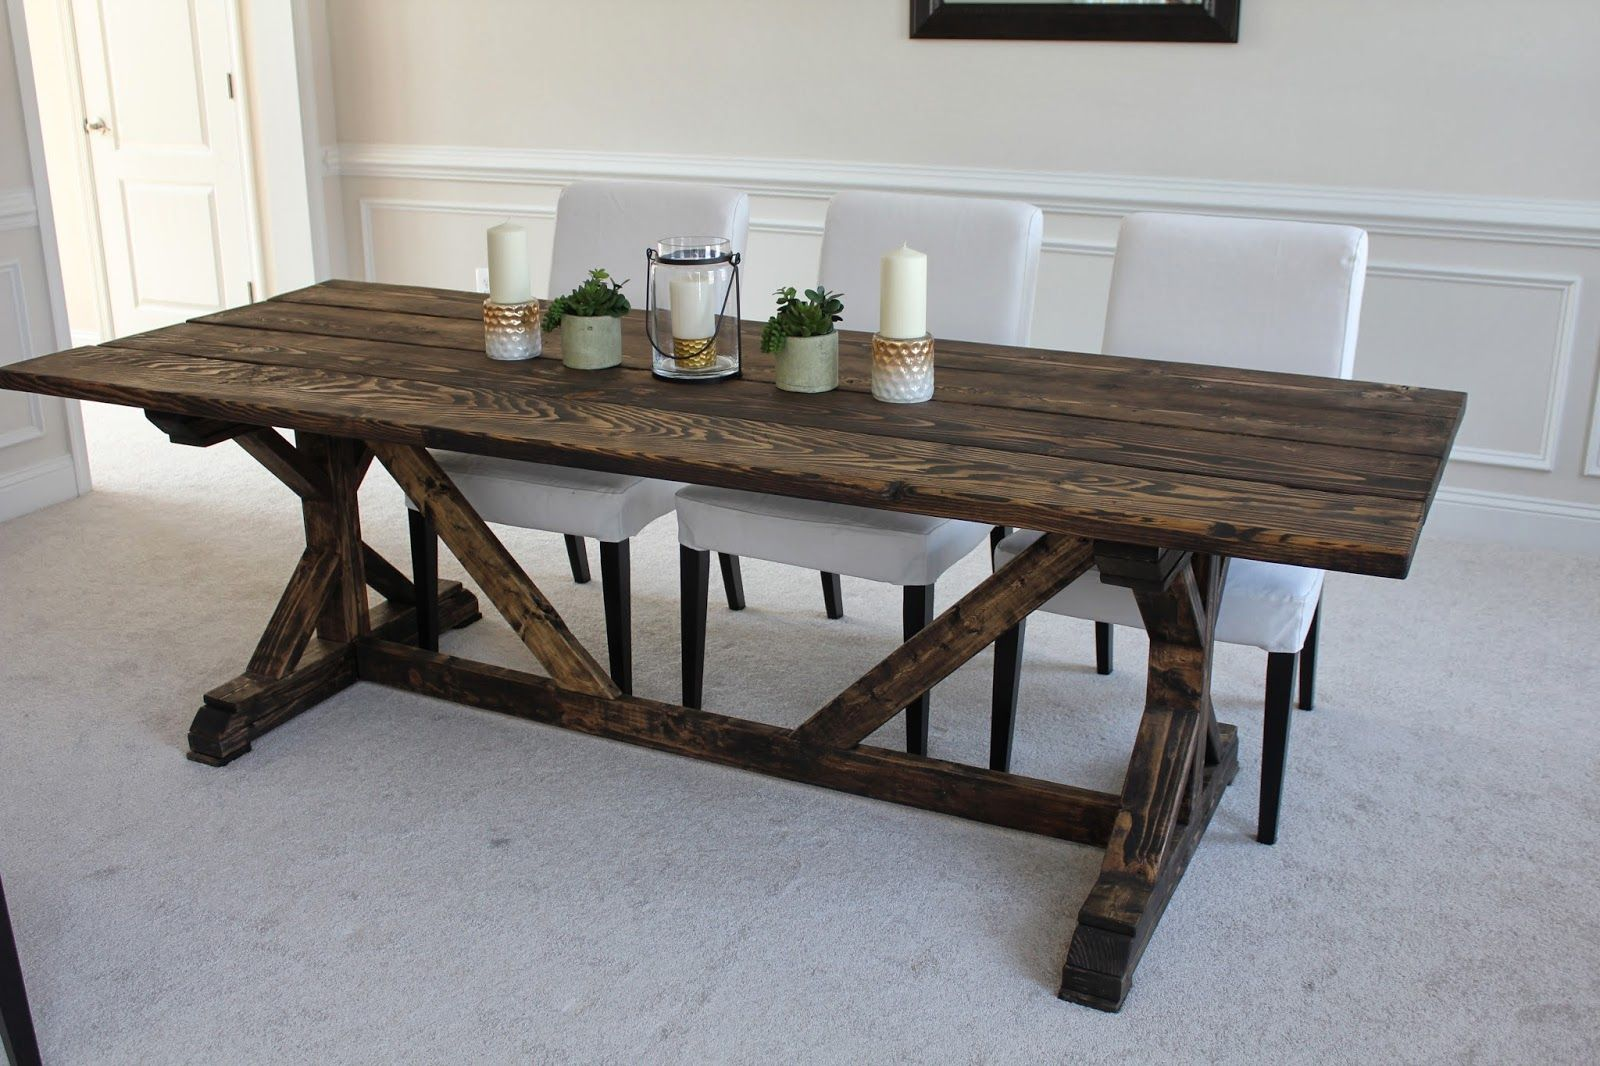 Room Wooden Farmhouse Table Plans DIY